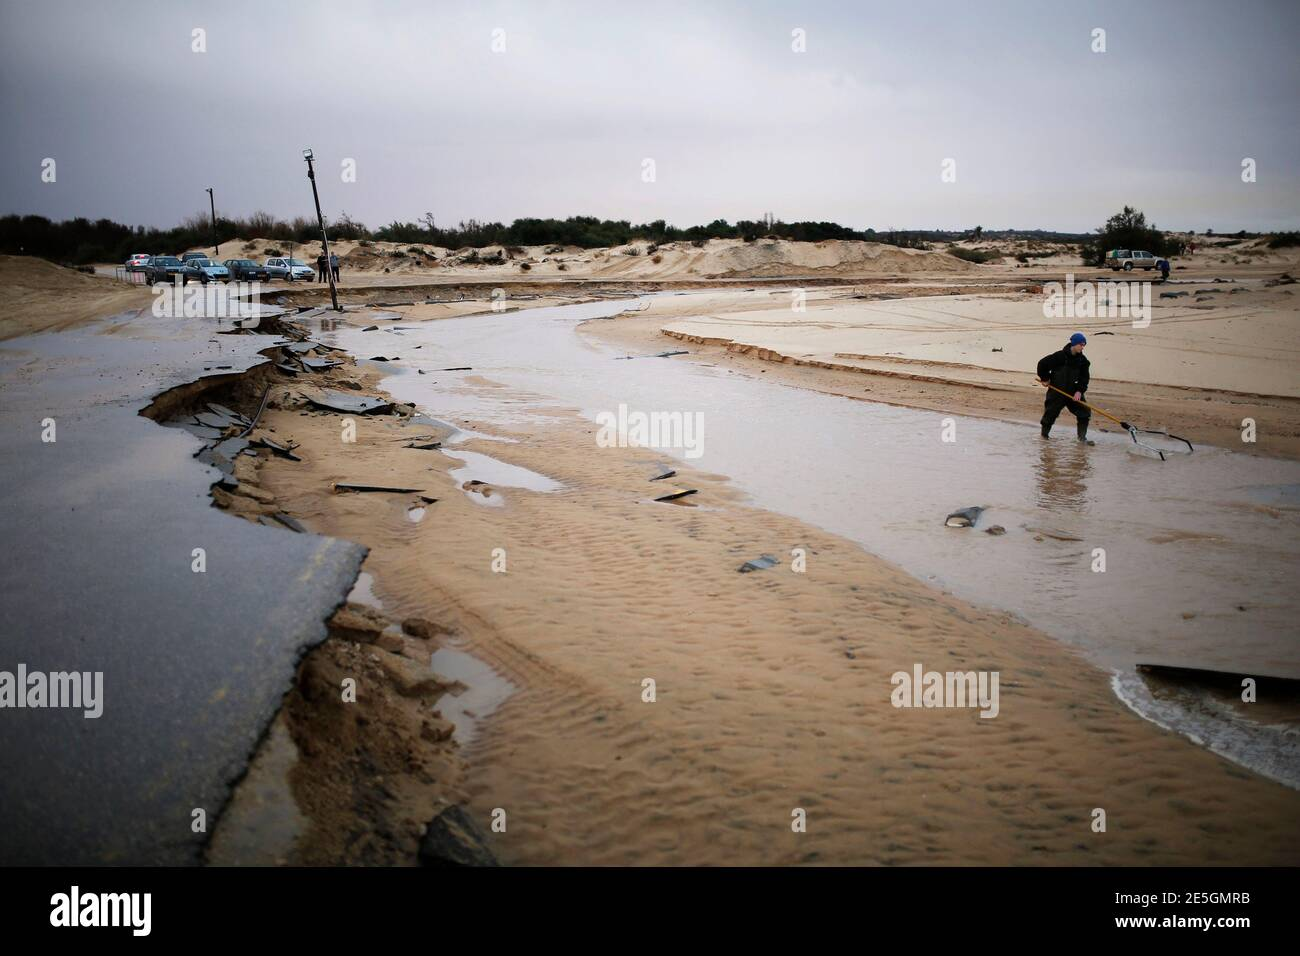 A man searches in a river stream following heavy rains and flooding on a beach of the Mediterranean sea near Kibbutz Nitzanim in southern Israel December 14, 2013. REUTERS/Amir Cohen (ISRAEL - Tags: ENVIRONMENT) Stock Photo